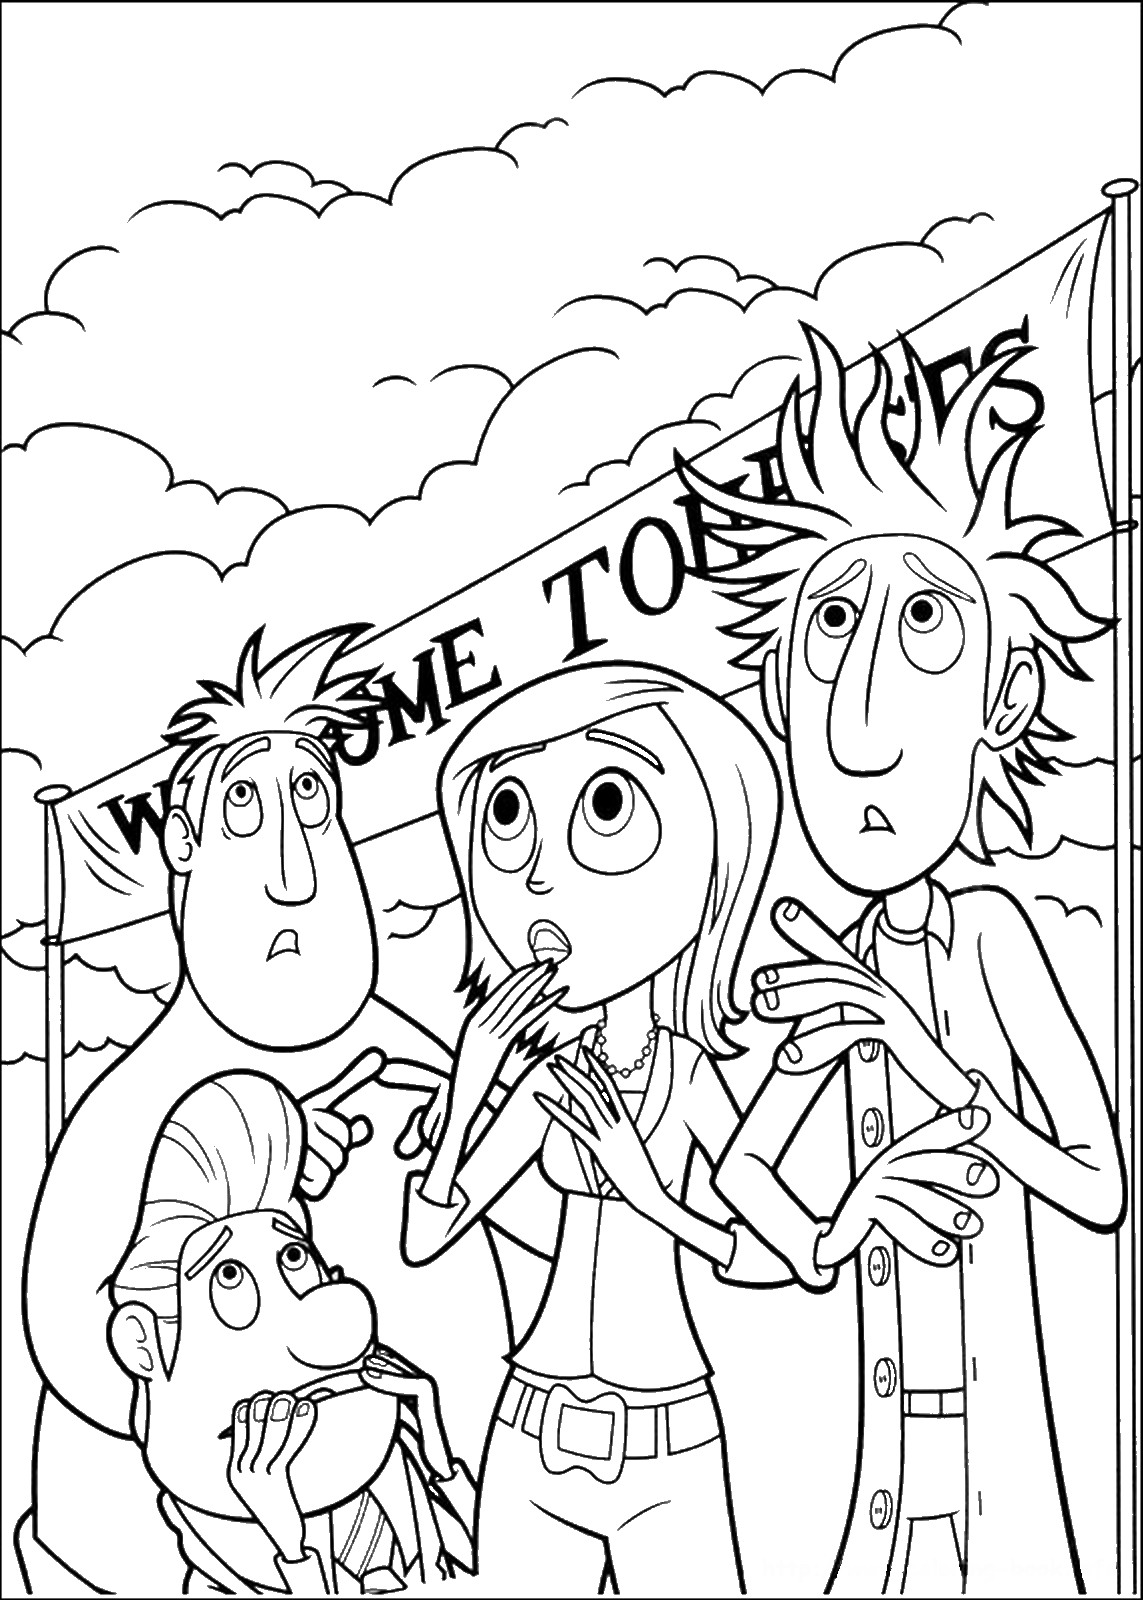 cloudy with a chance of meatballs 2 coloring pages cloudy with a chance of meatballs coloring pages of 2 cloudy meatballs coloring with chance pages a